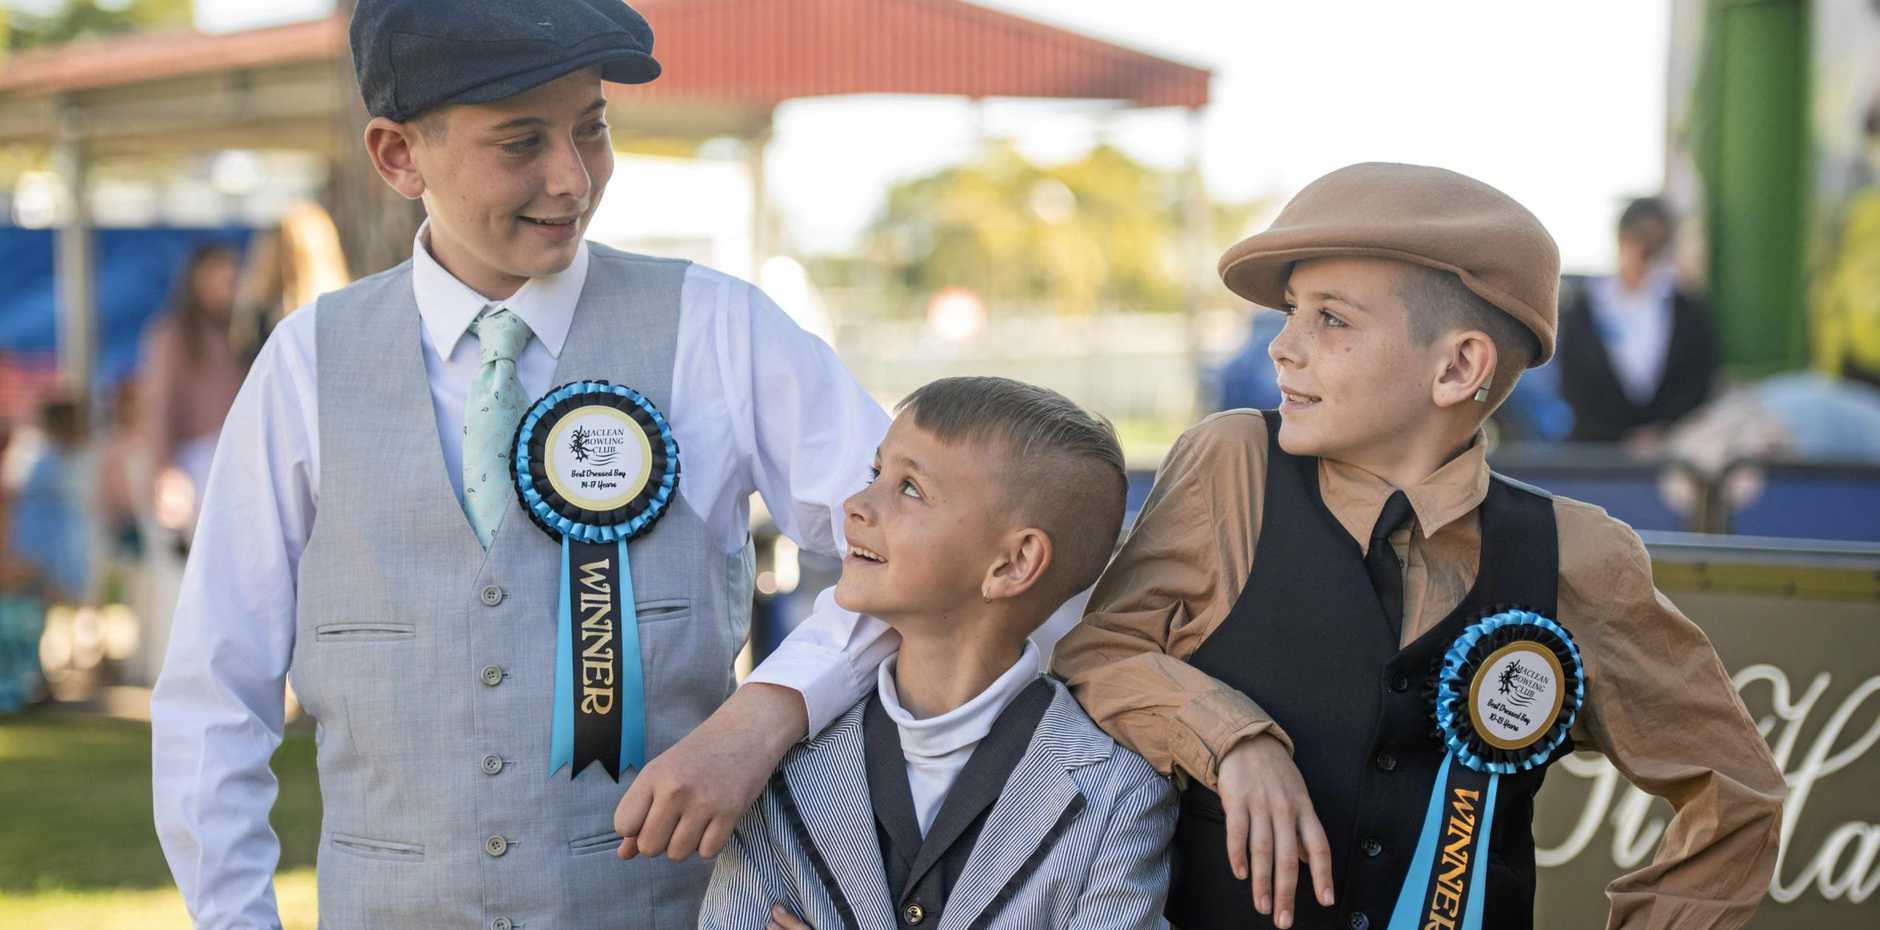 FAMILY AFFAIR: EYE FOR STYLE: Rylan, Jye and Logan Cone compare their prizes from the different categories of the Maclean Bowling Club kids Fashion on the Field competitions.